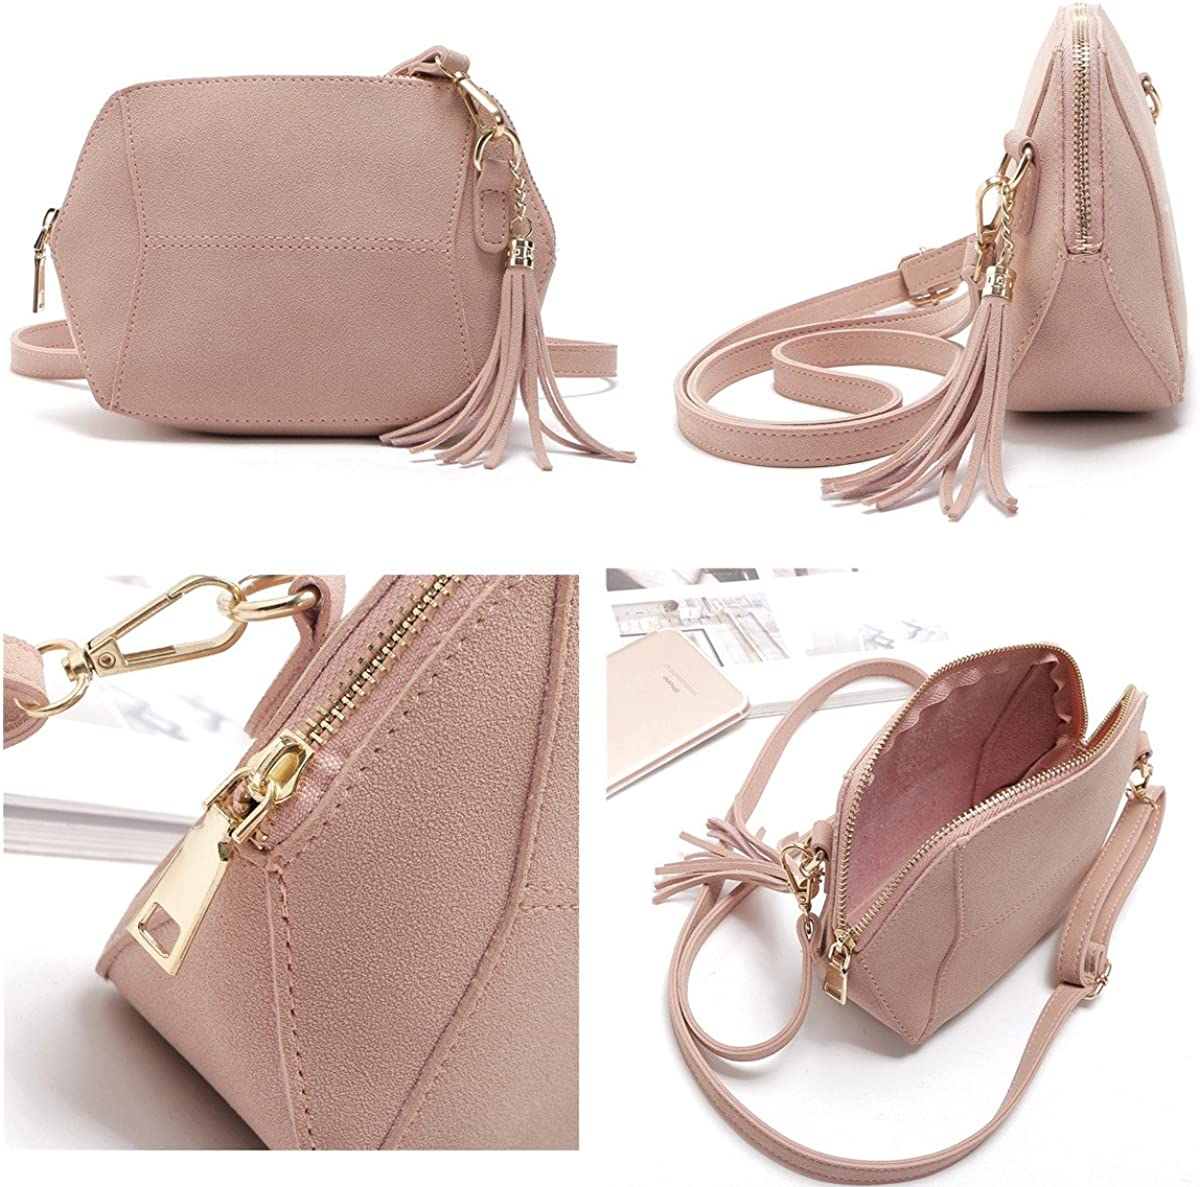 Girls Crossbody Purse for Kids Women Leather Roomy Bag with Tassel Adjustable Straps Design in Italy